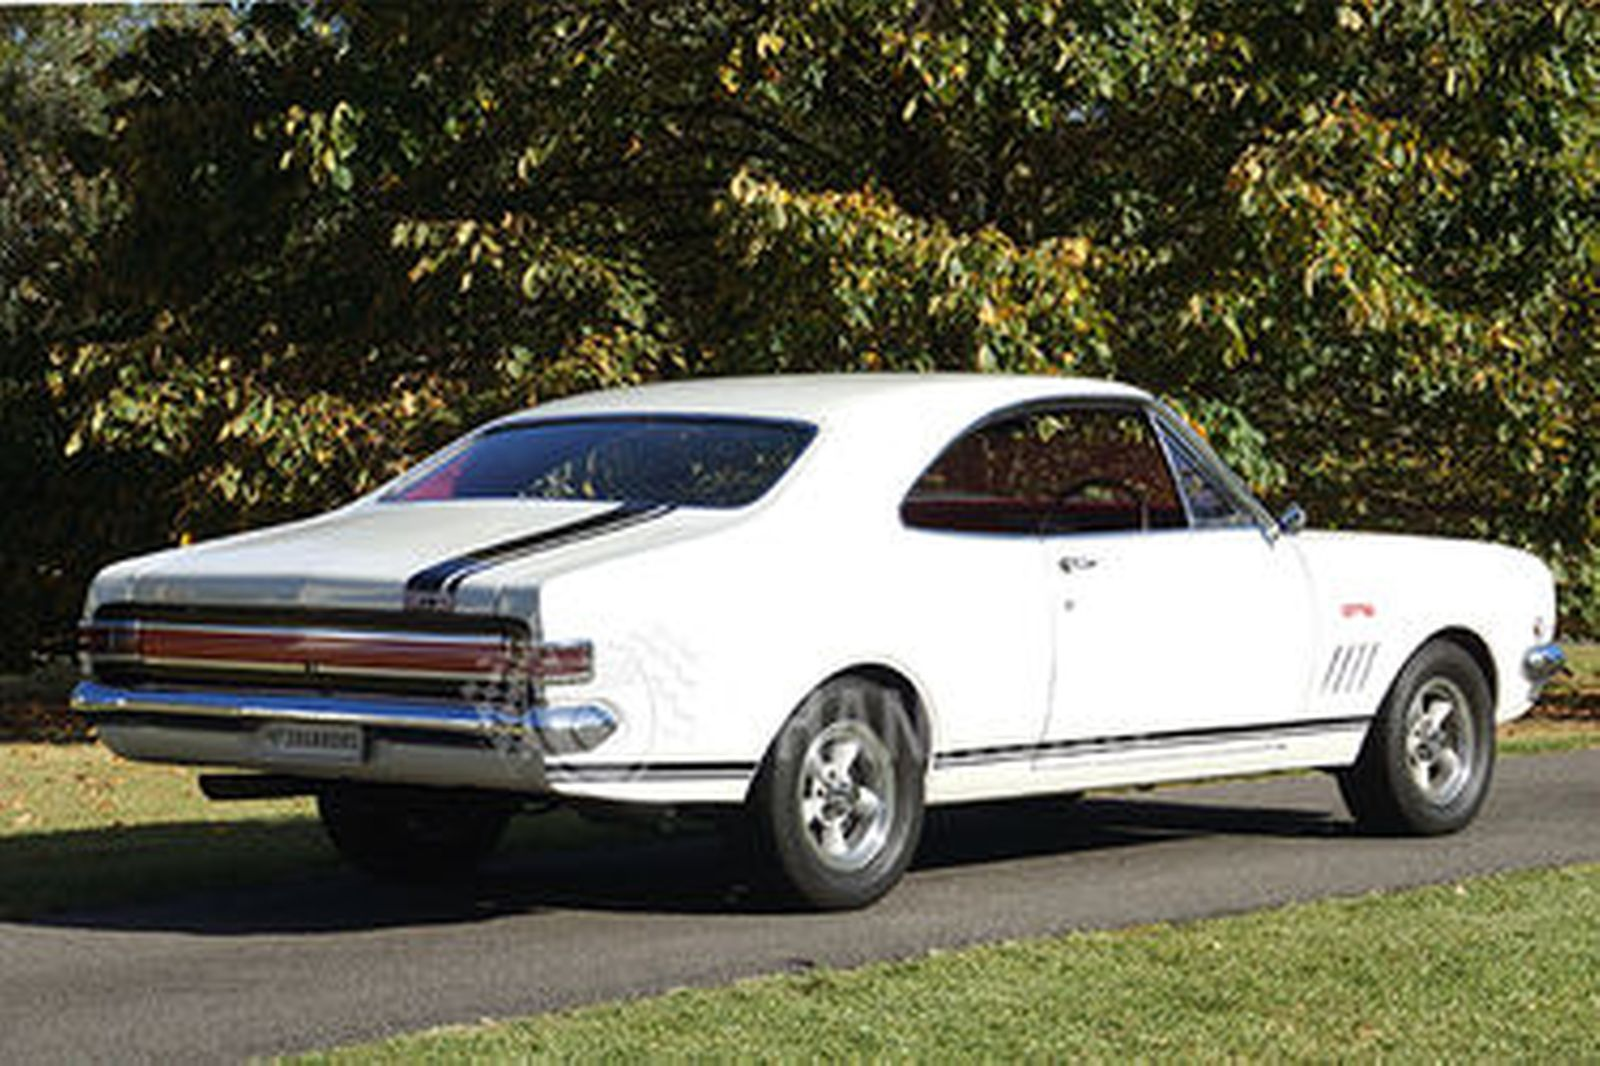 Sold: Holden HK Monaro '327 Improved' Coupe Auctions - Lot ...